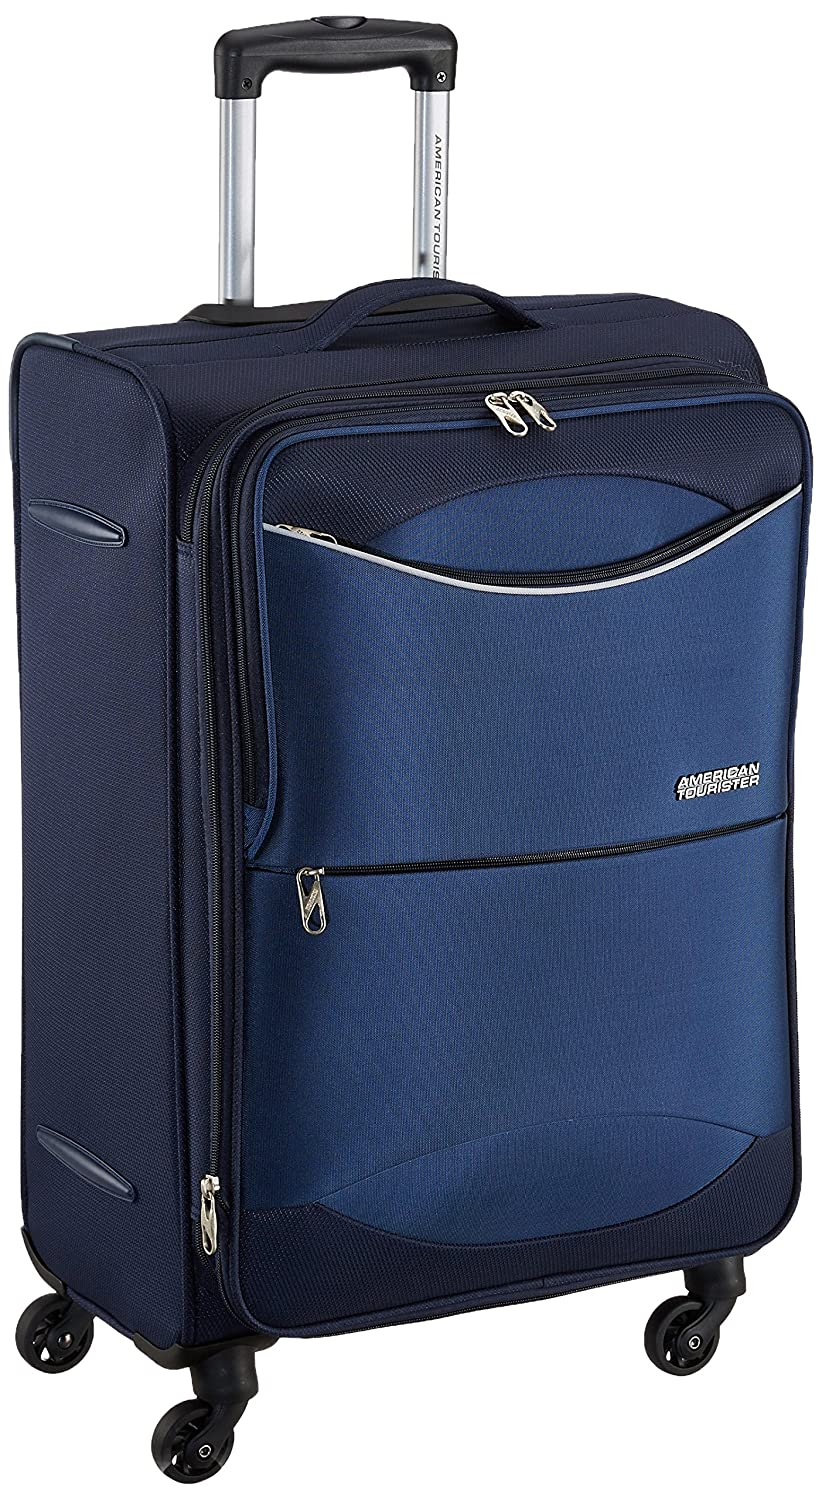 American Tourister Brookfield Polyester 80.5 cms Marine Blue Suitcase (AMT Brookfield SP80 Marine BLU)